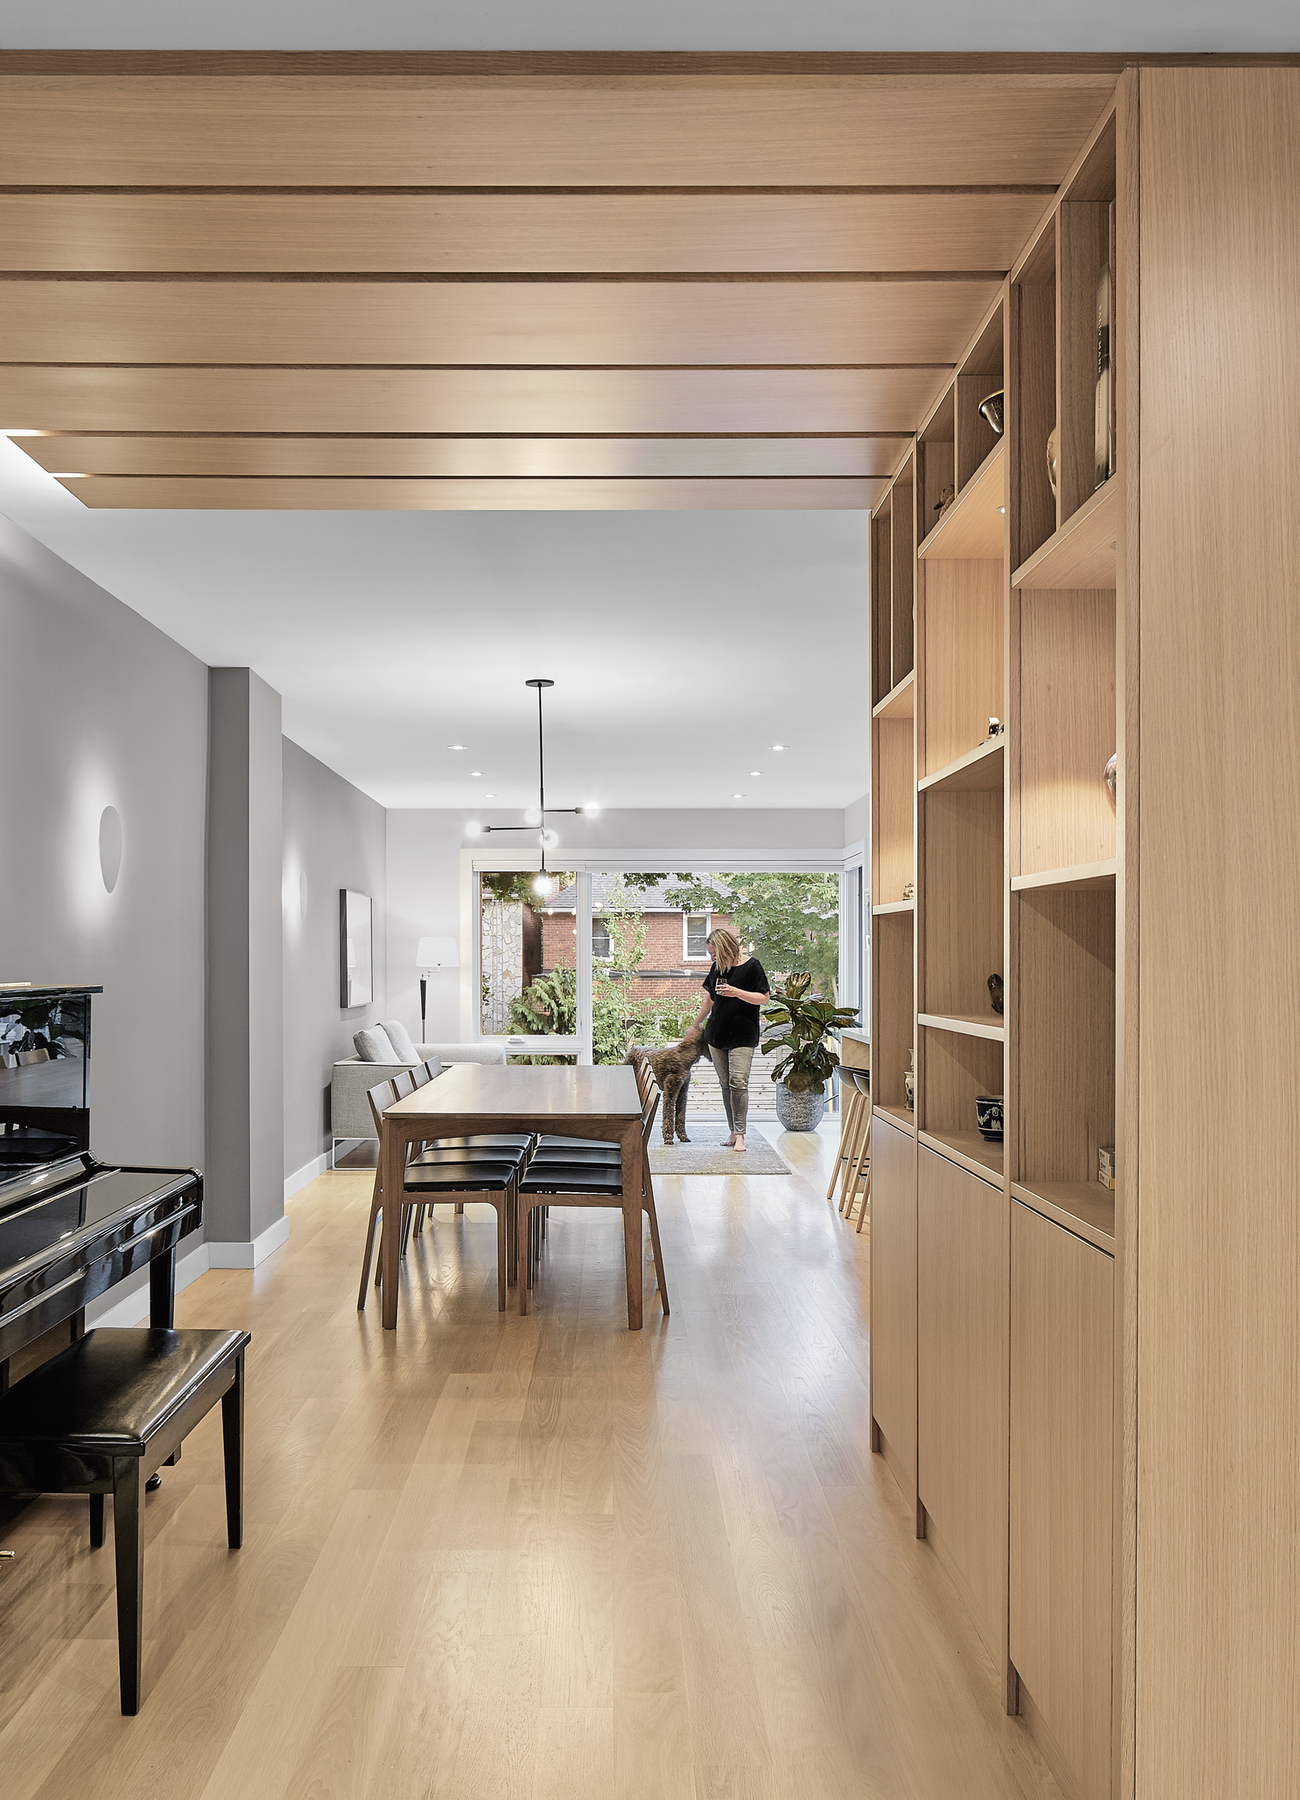 The custom cabinetry in House of Louis, a North Toronto renovation by Asquith Architects